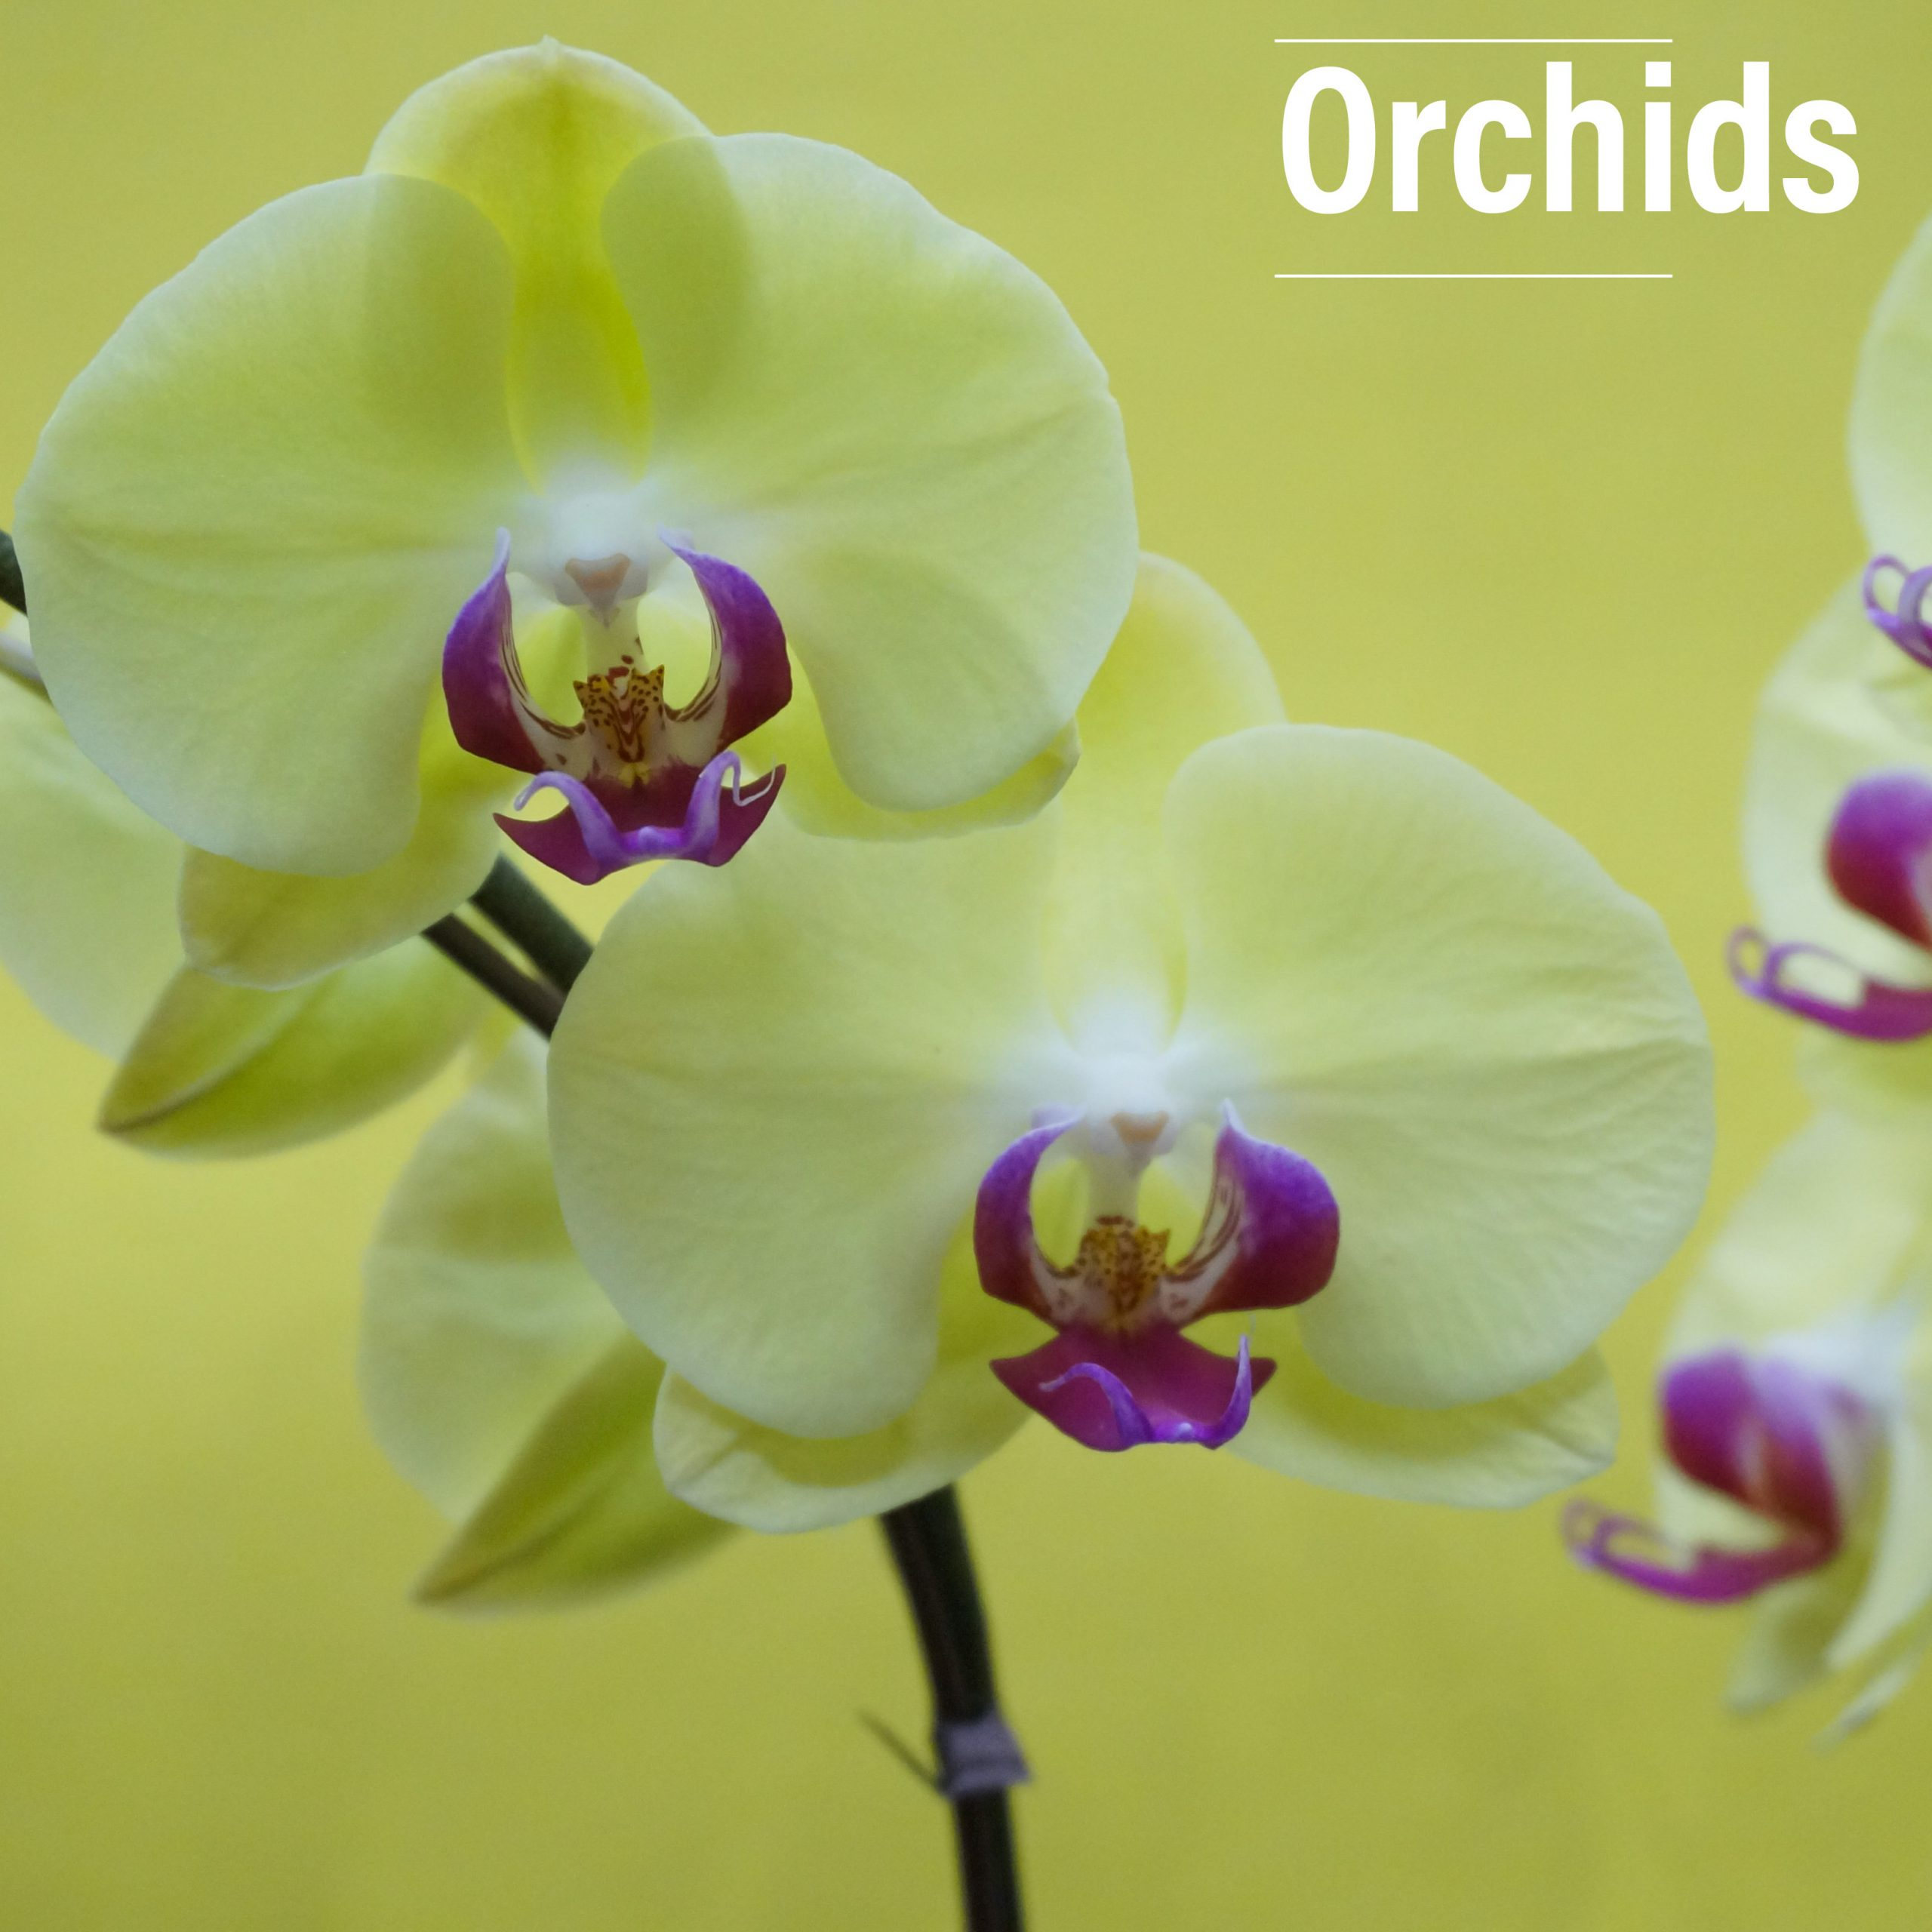 Fresh orchids are delivered monthly on our blooming rotation